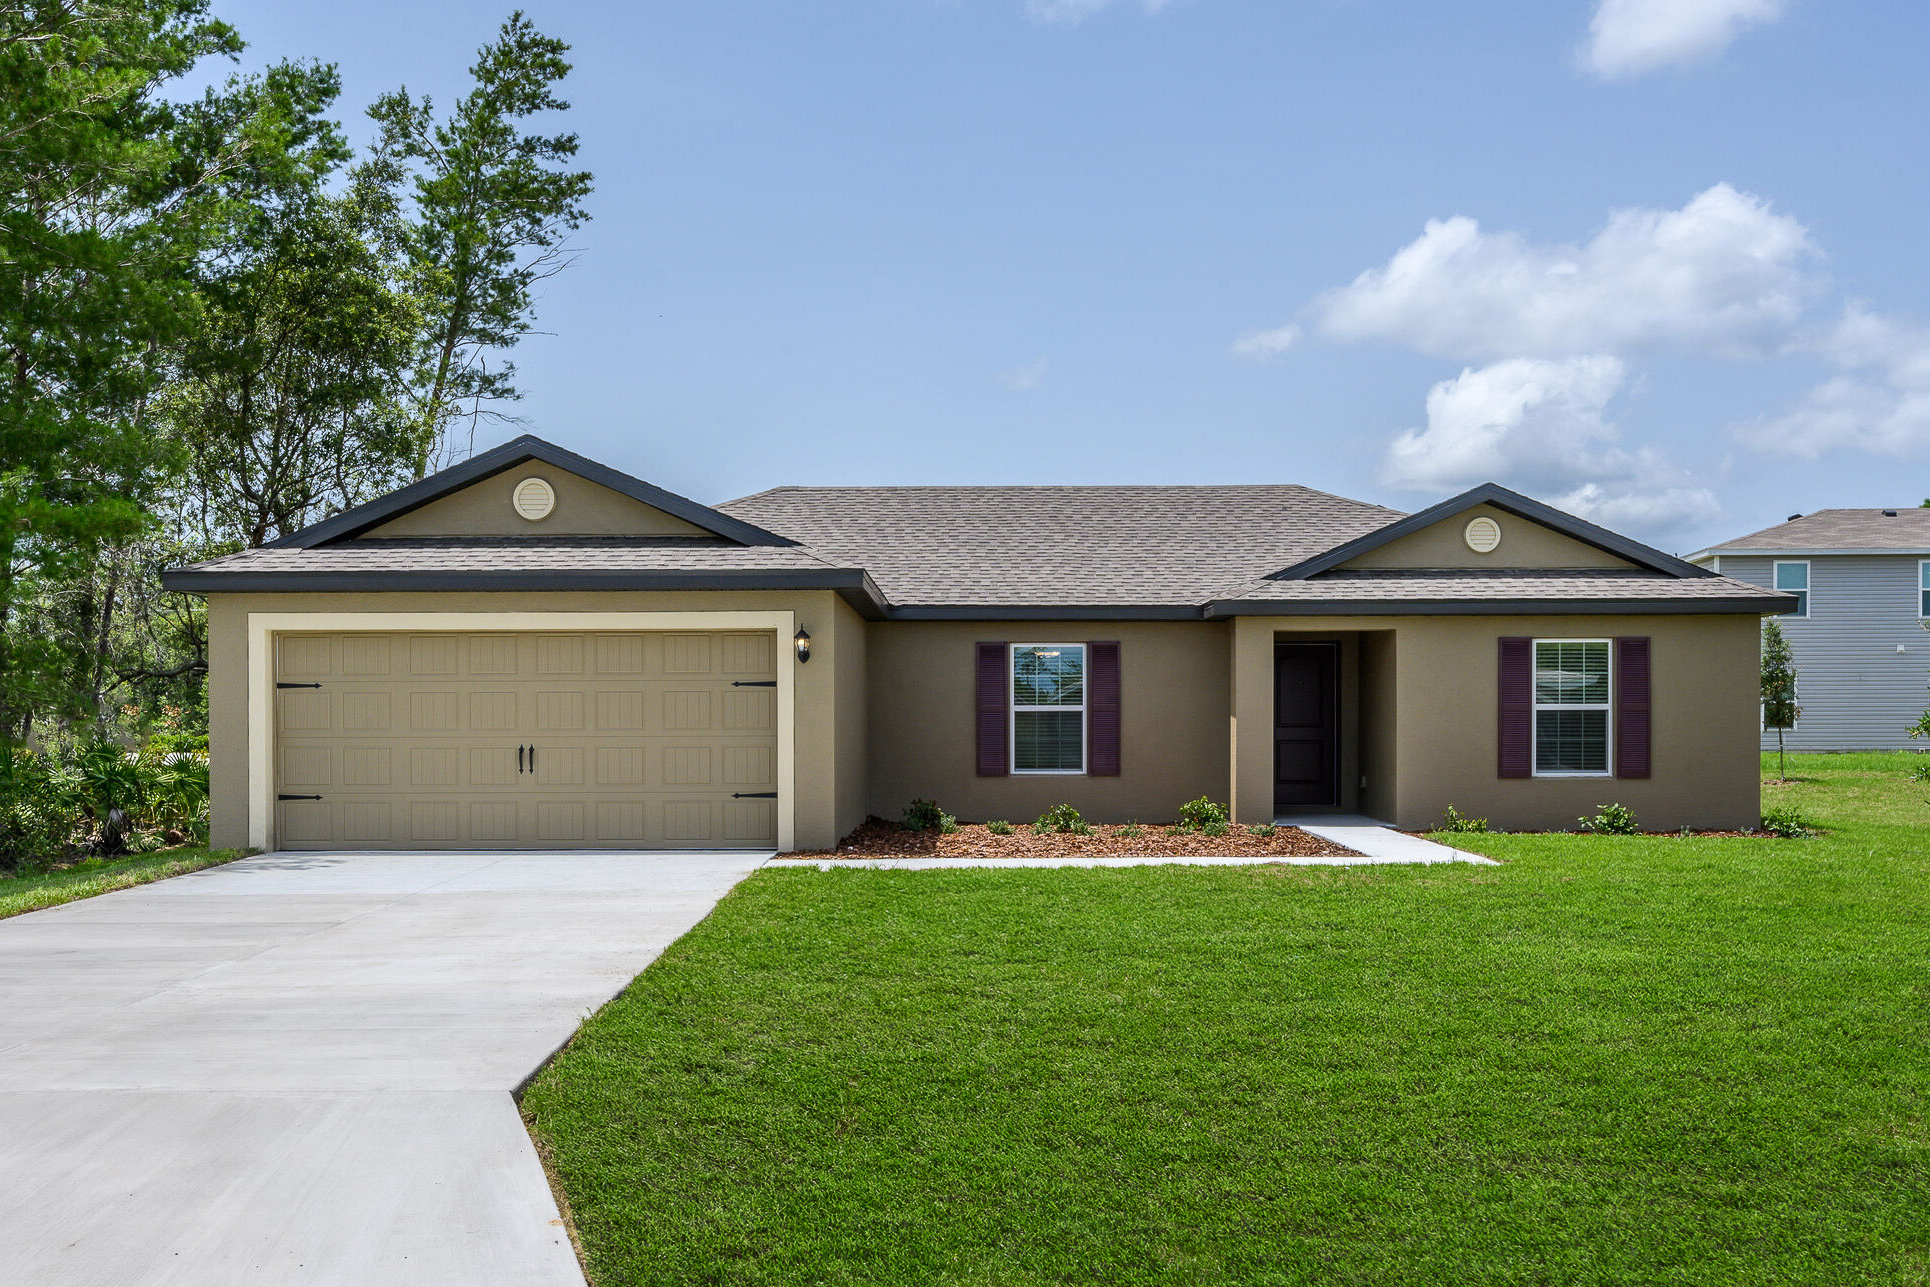 Affordable, New Homes Now Available in an Exceptional Location